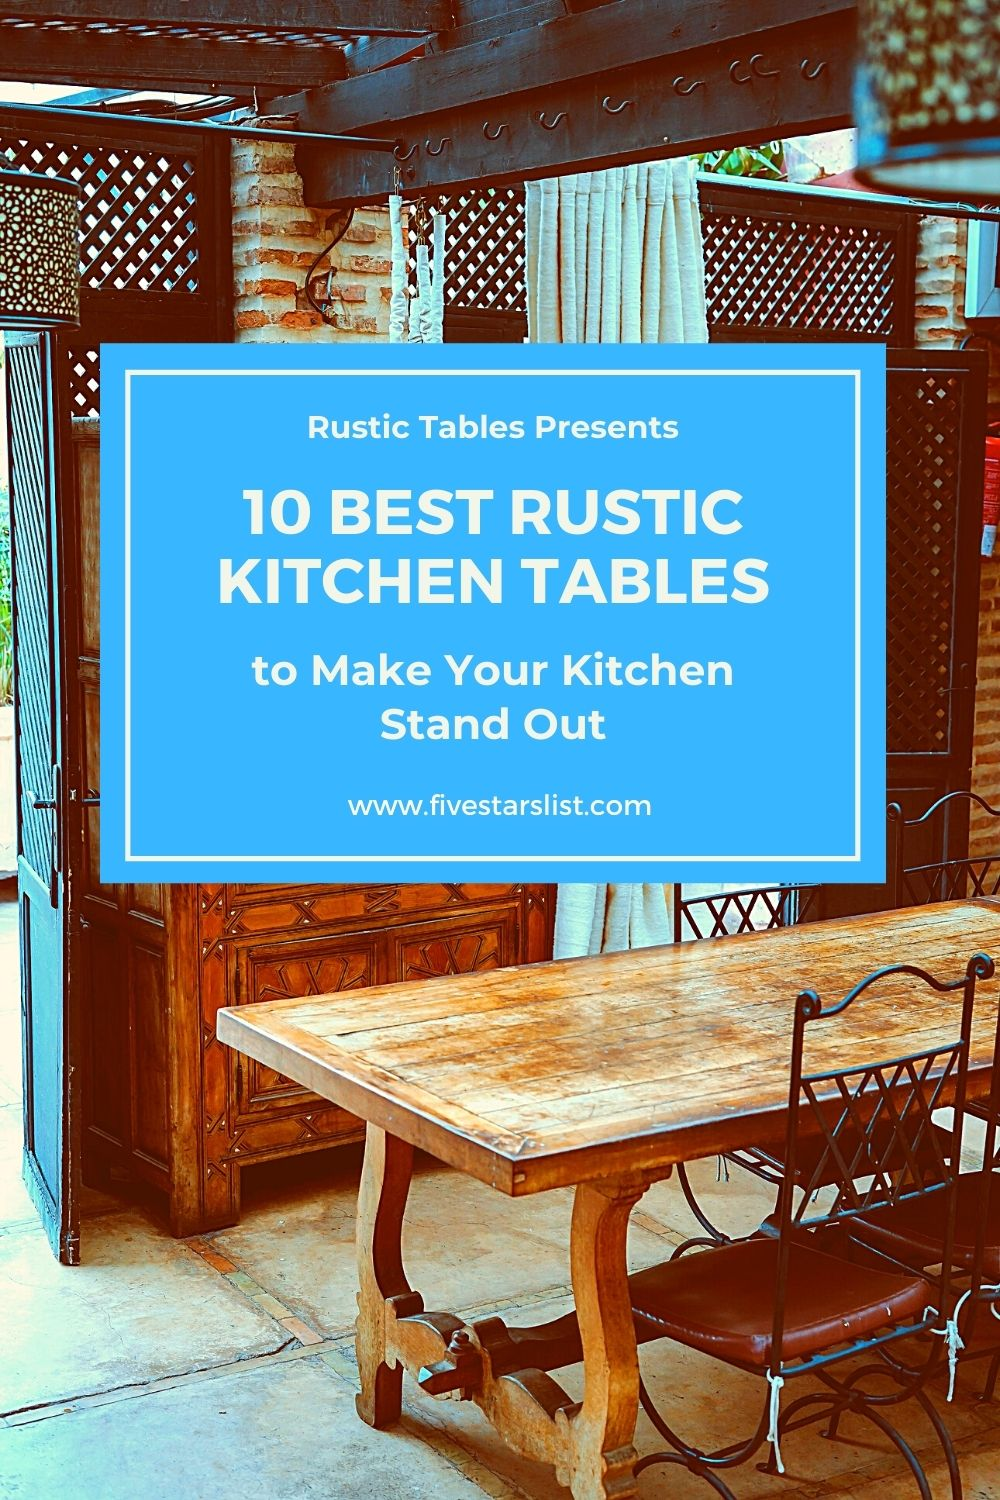 10 Best Rustic Kitchen Tables to Make Your Kitchen Stand Out